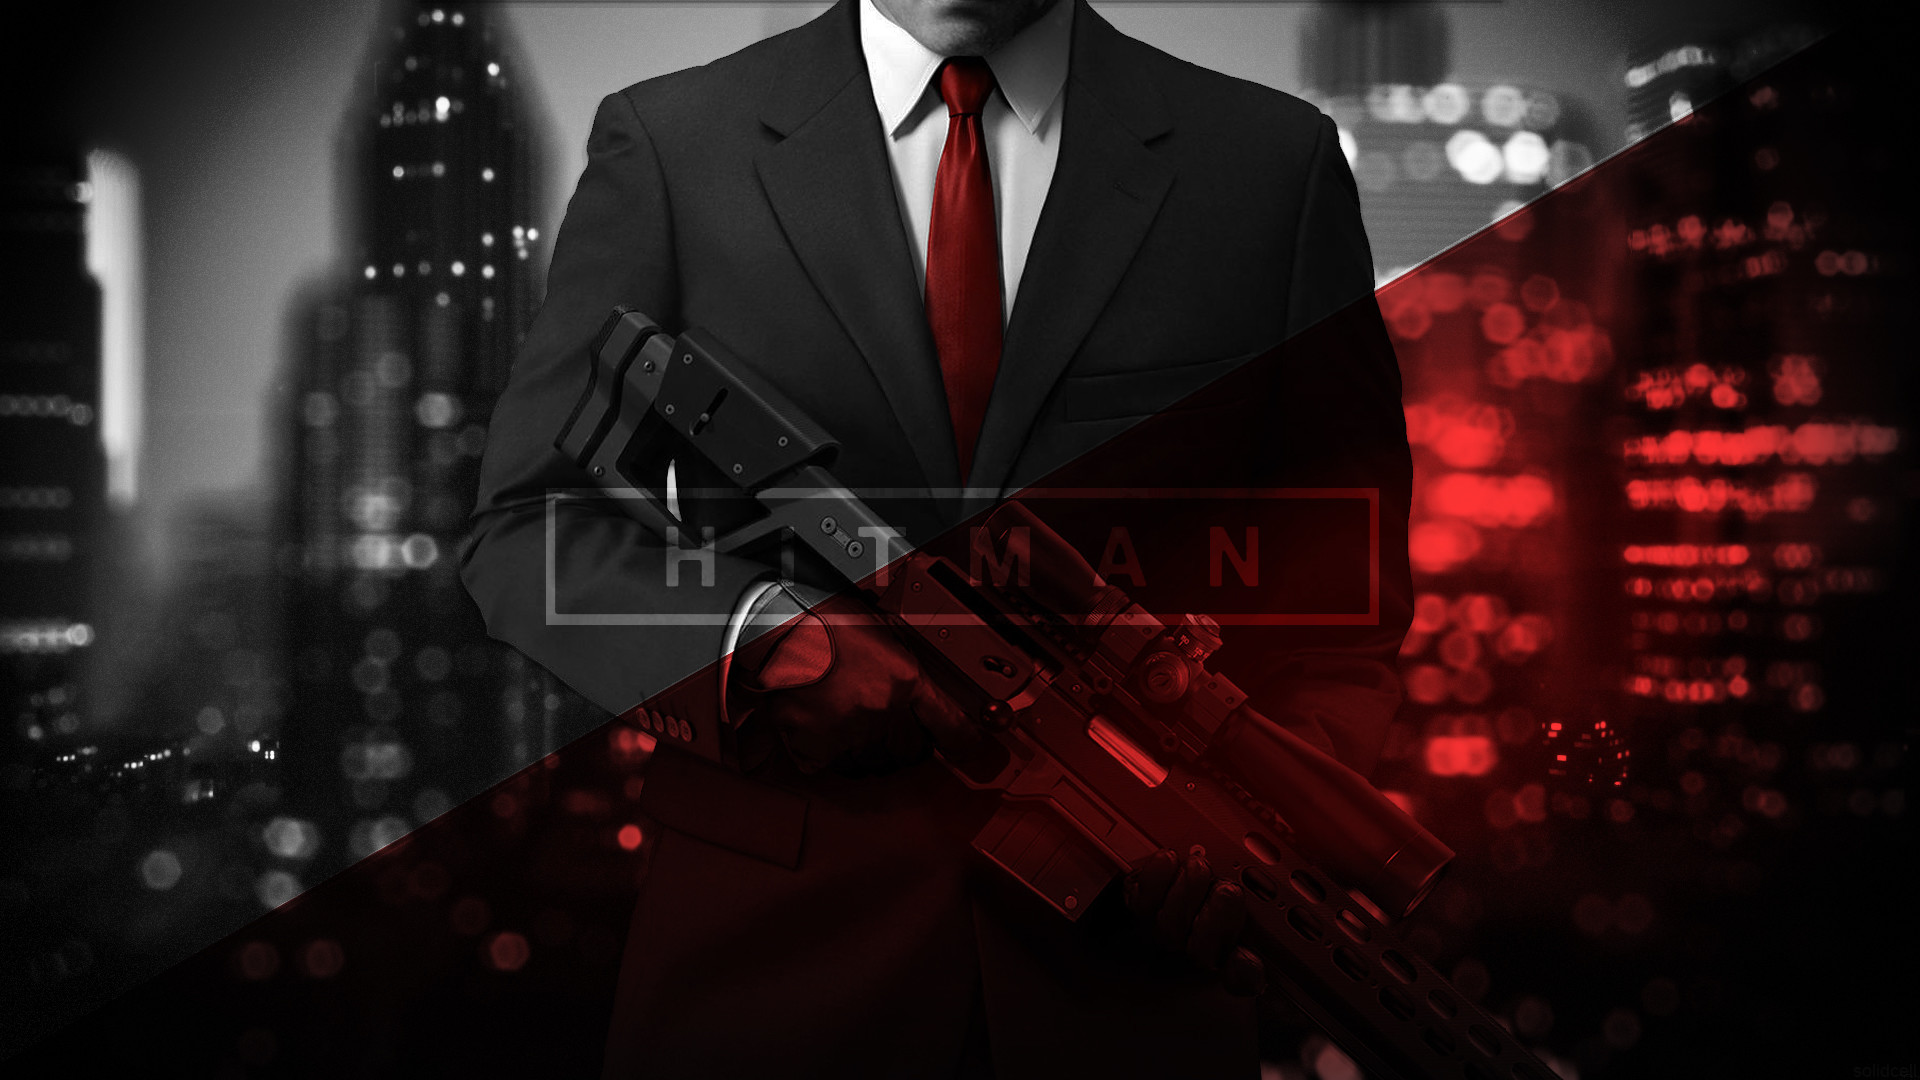 Hitman Hd Phone Wallpaper